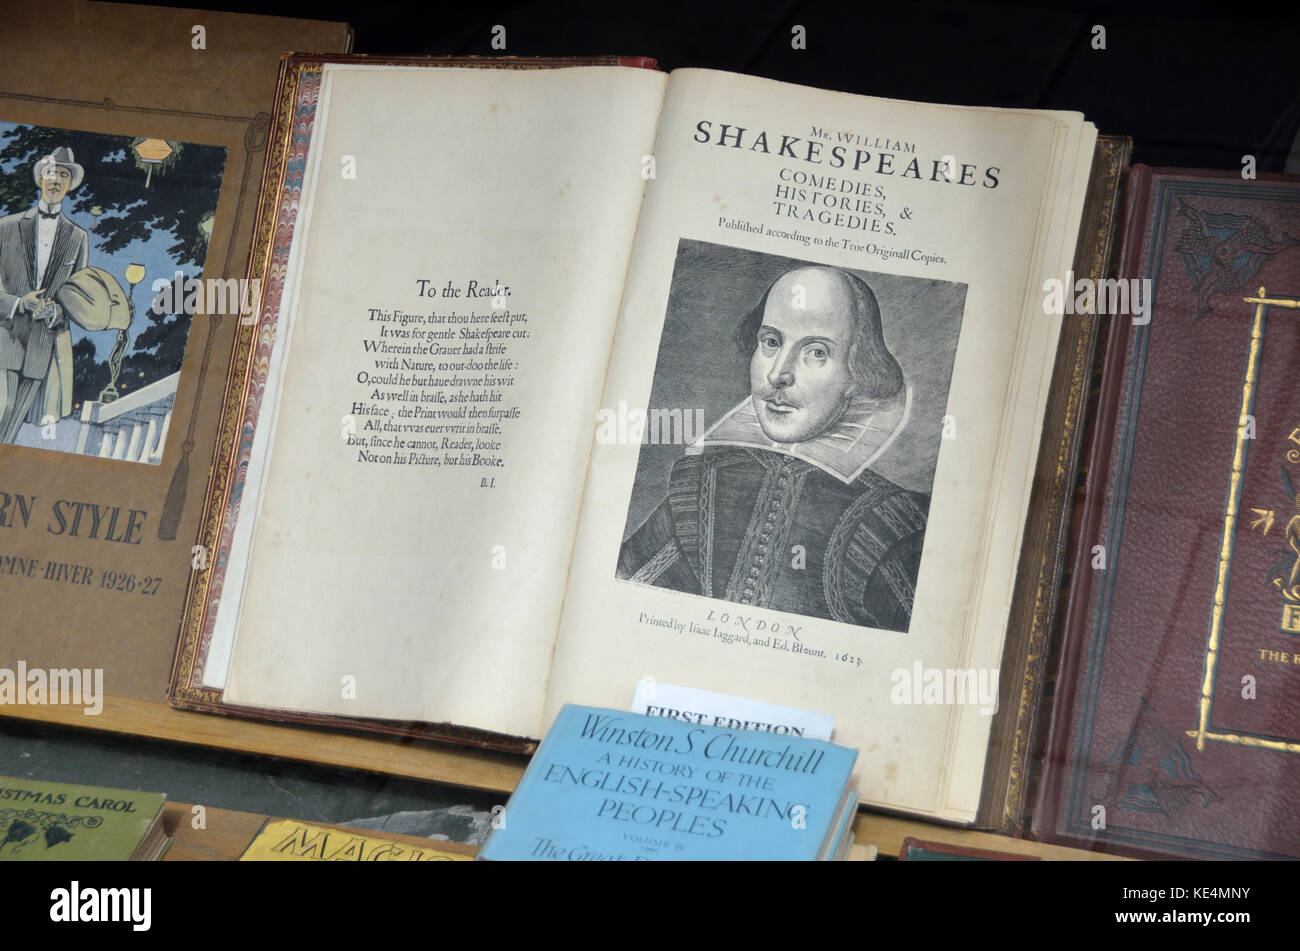 Antiquarian Shakespeare volume first edition in a shop window. - Stock Image